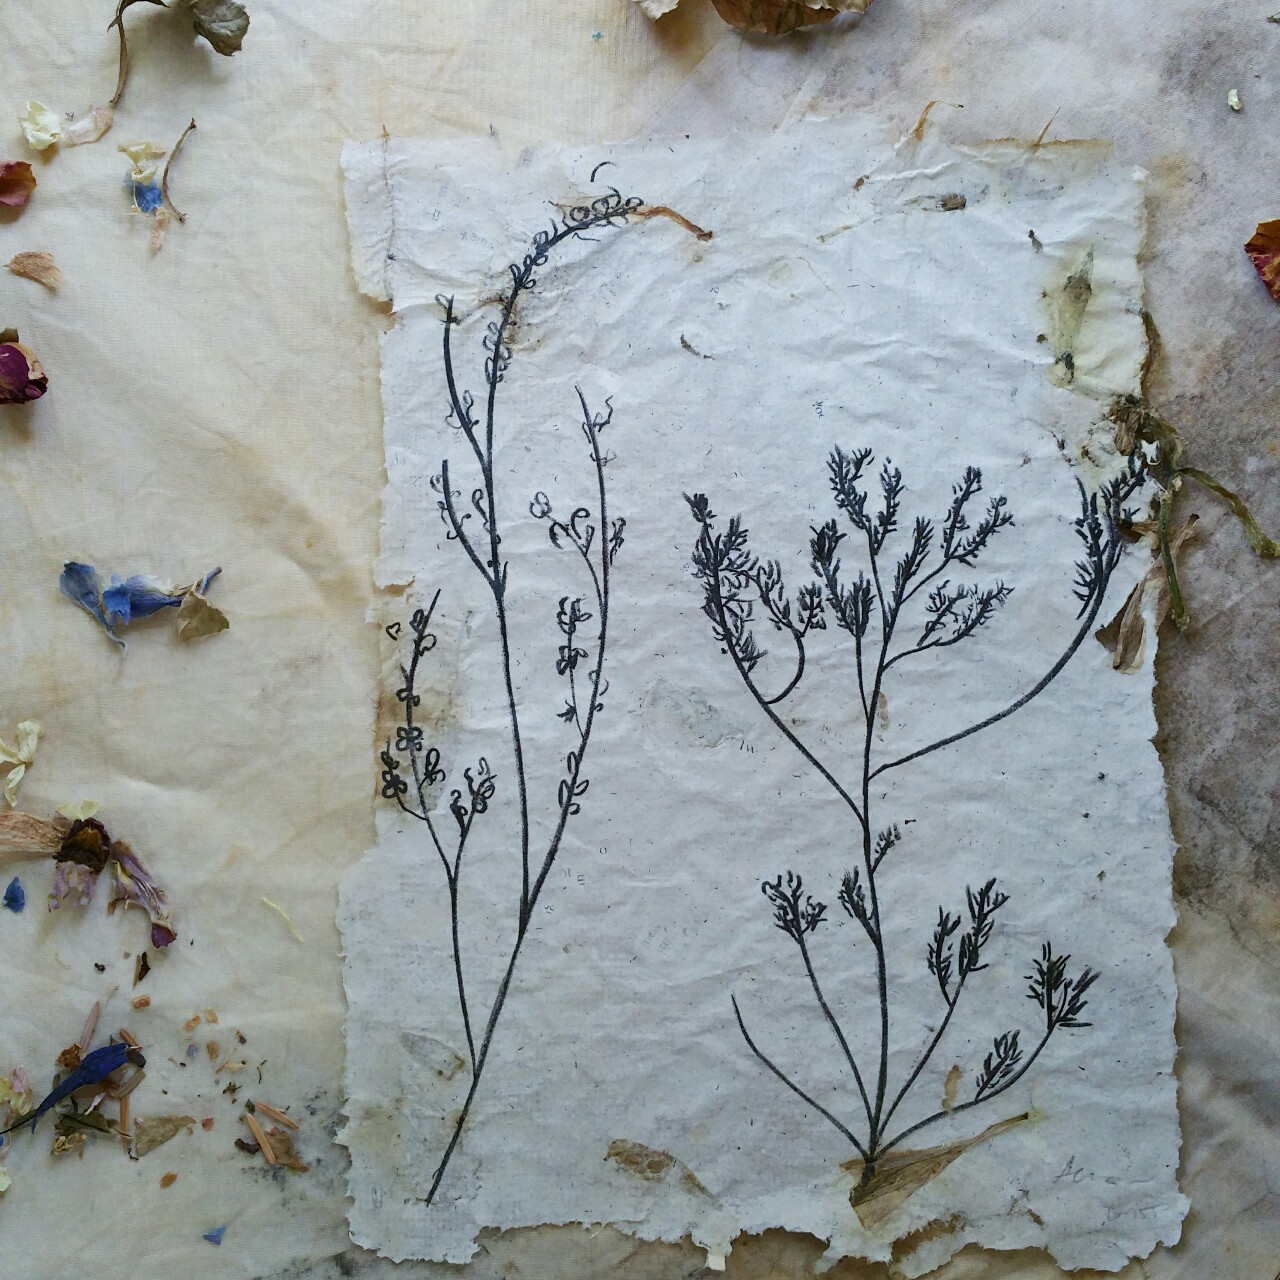 collaboration between anny and printmaker  kristin sarette ; anny made the paper using natural materials, books, and flower petals, stems, and leaves, as well as designed and sketched on the stone, while kristin did the hand printing.